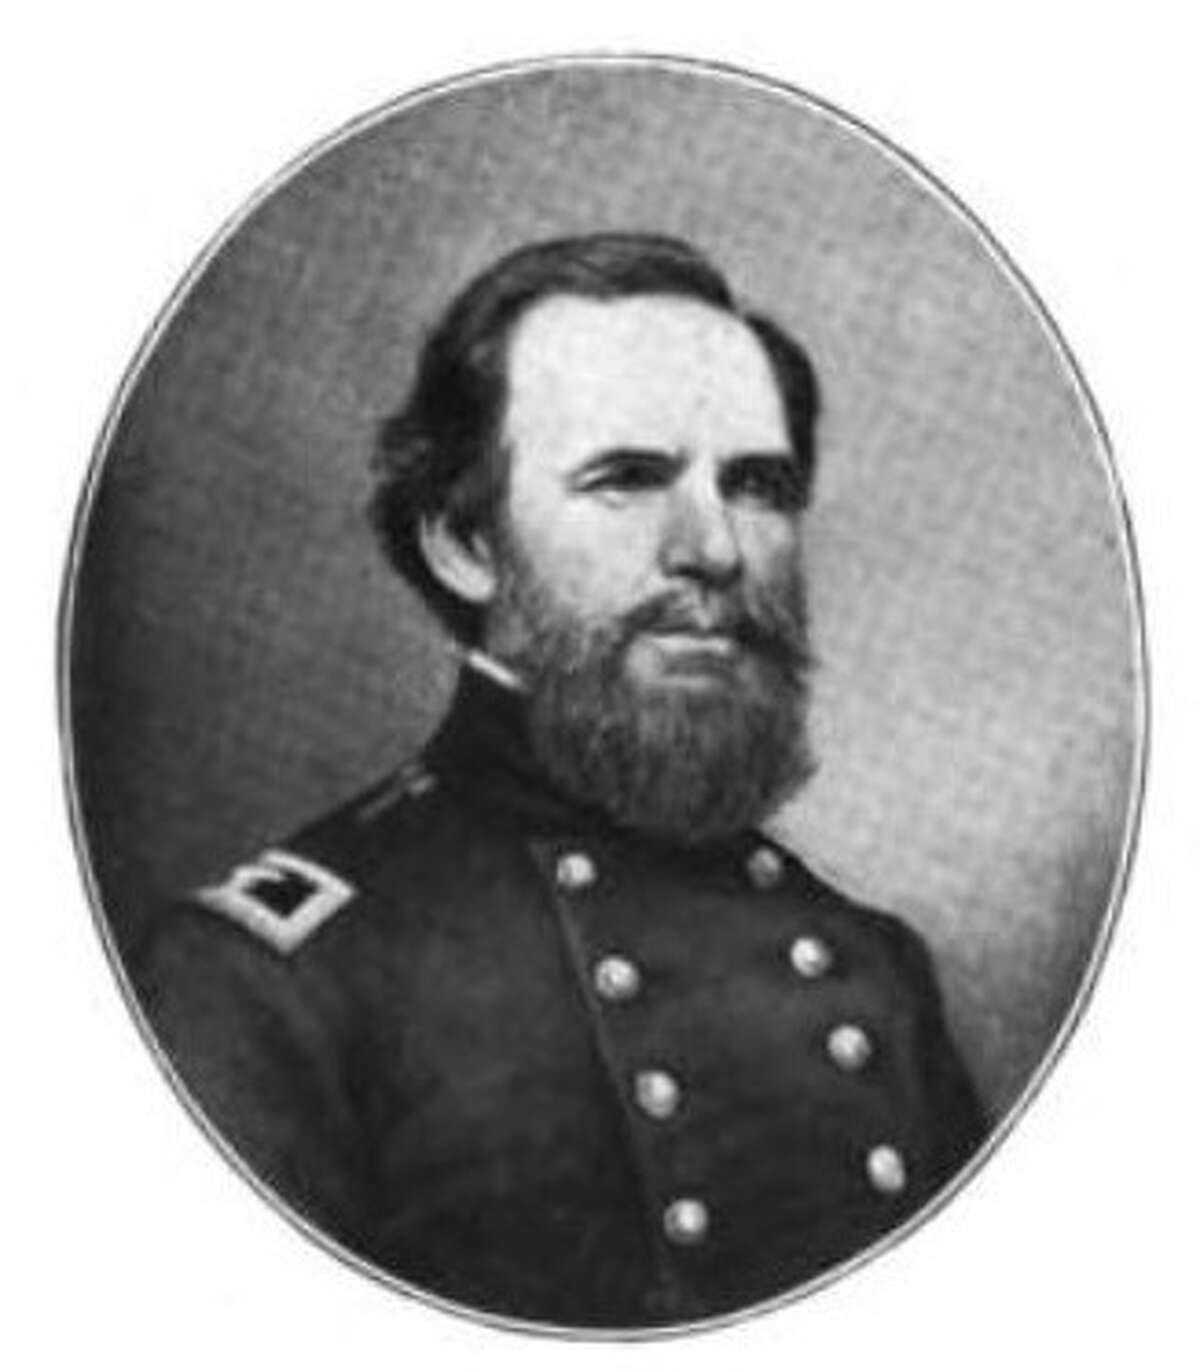 Rufus Easton's son, Alton Easton, was a veteran of the Mexican-American War. He later became assistant treasurer of the United States and served at the sub-treasury in St. Louis. He is laid to rest with other prominent Missourians at historic Bellefontaine Cemetery in St. Louis.